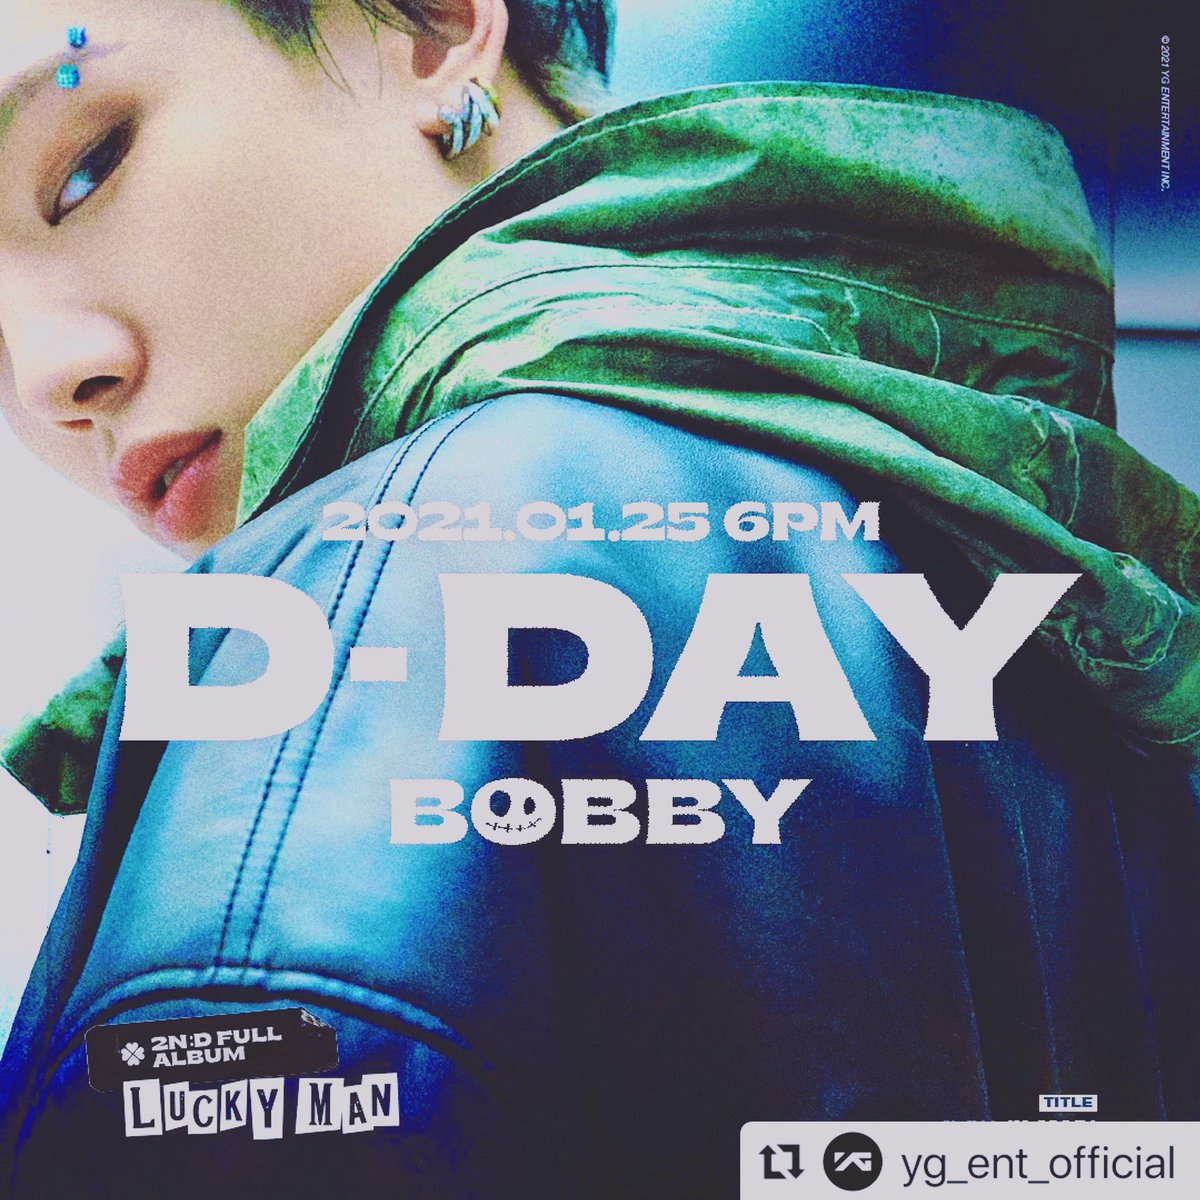 #Repost @yg_ent_official with @make_repost ・・・ ⠀ BOBBY [LUCKY MAN] D-DAY POSTER ⠀ 'LUCKY MAN' RELEASE ▶️2021.01.25 ⠀ #BOBBY #바비 @bobbyindaeyo #iKON #아이콘 @withikonic #YG